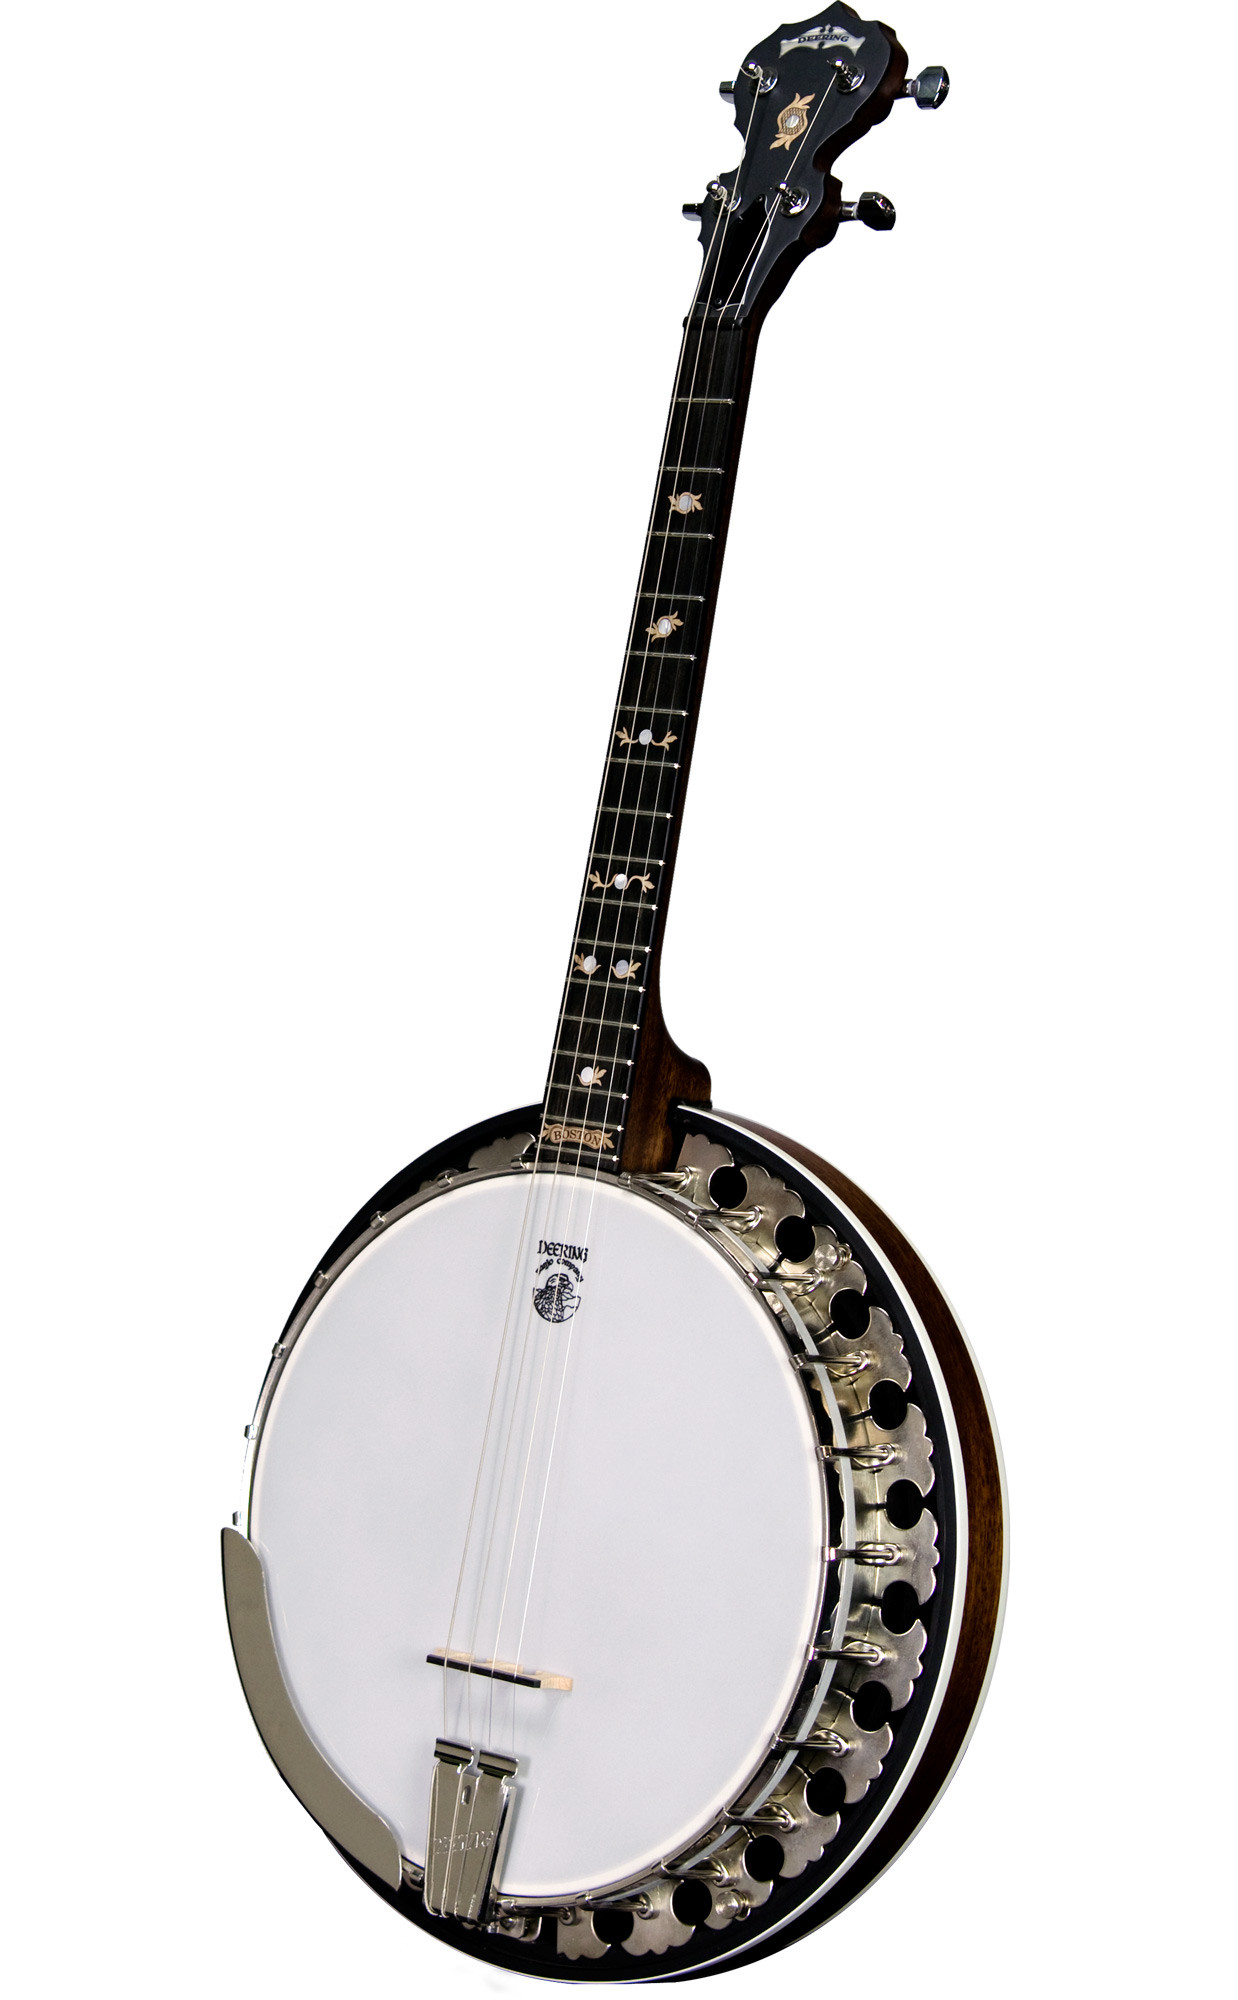 Deering Boston™ 17-Fret Tenor Banjo